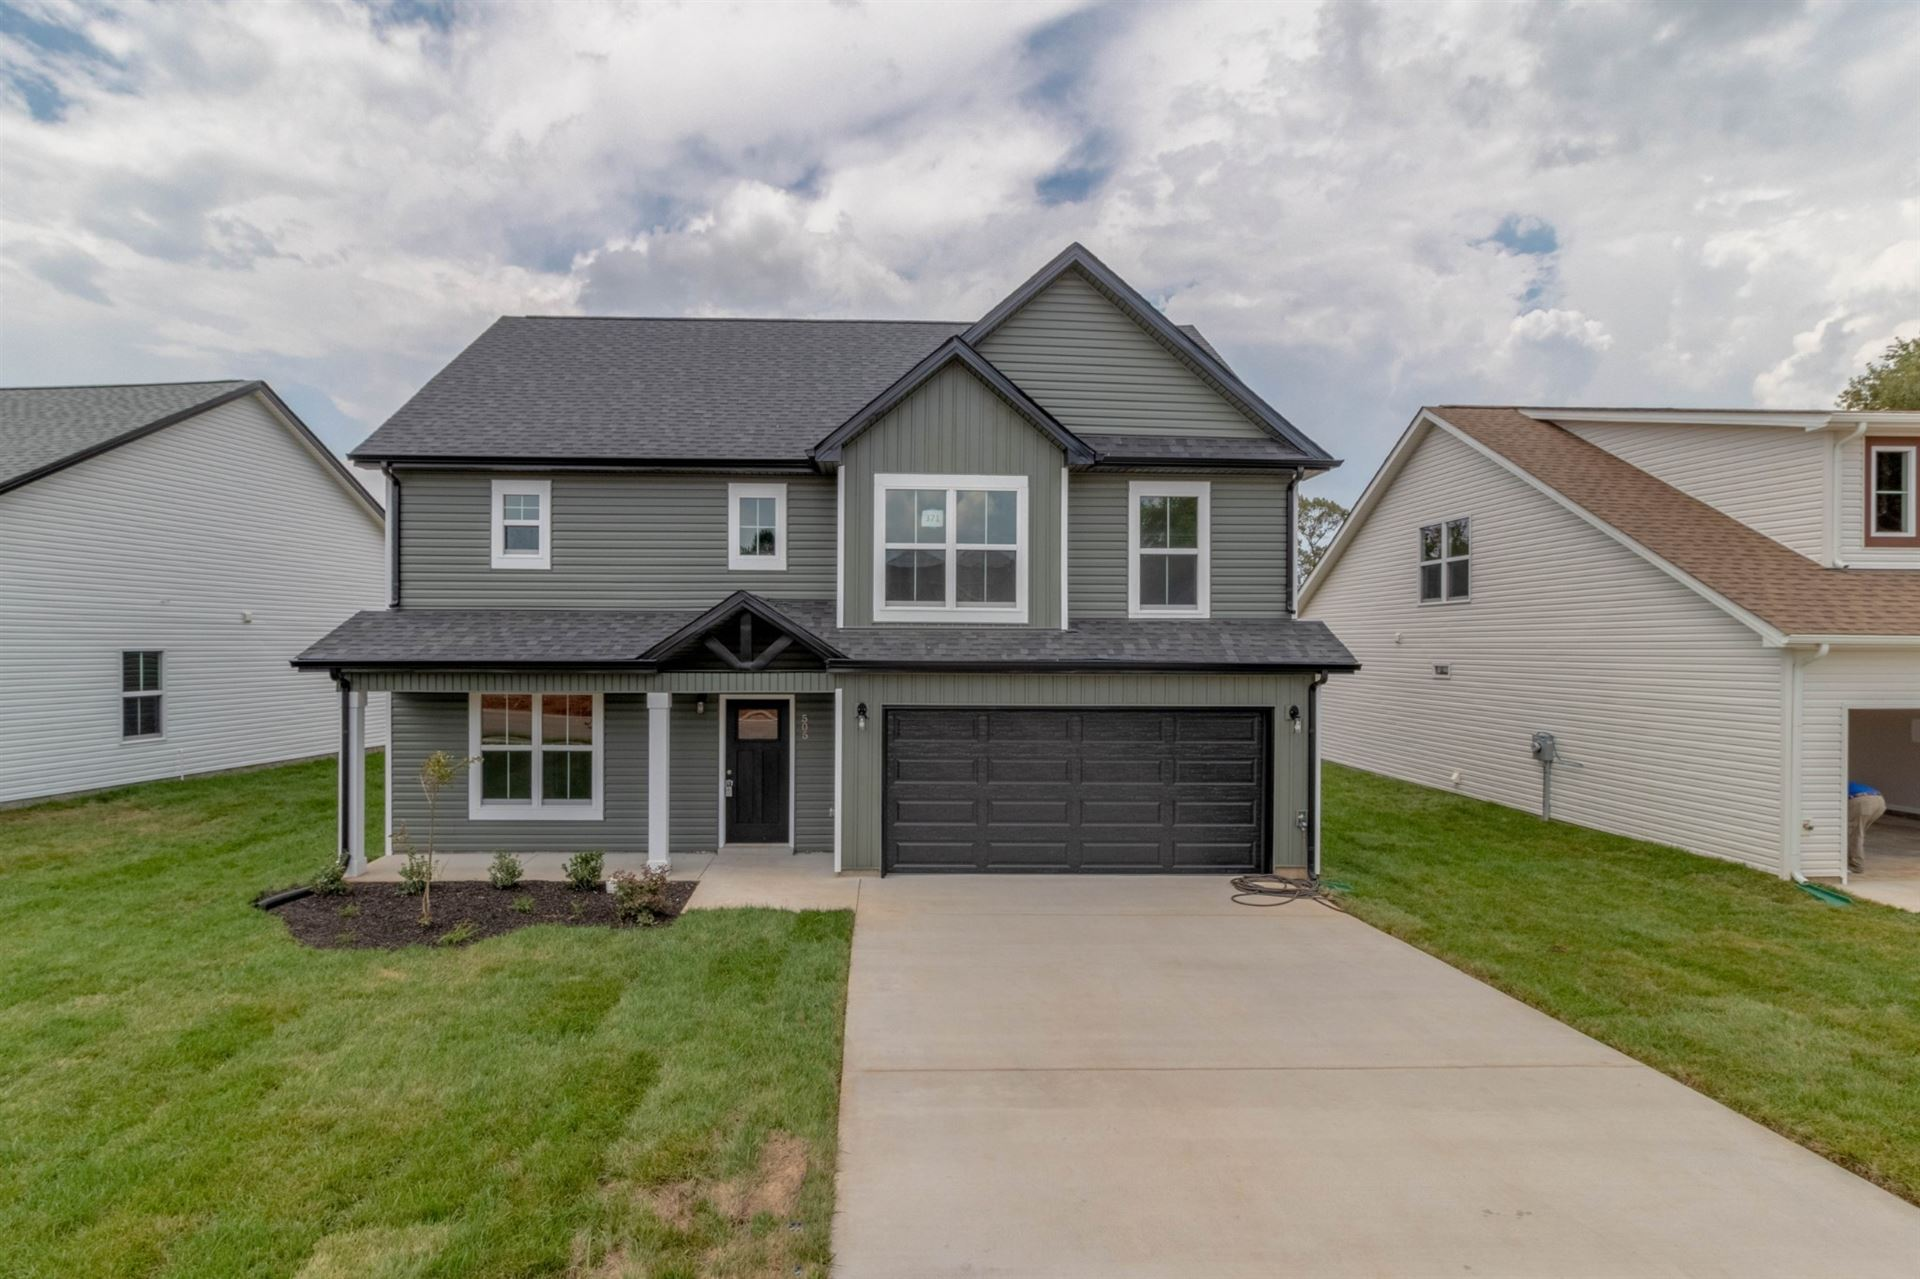 273 Eagles Bluff, Clarksville, TN 37040 - MLS#: 2221106